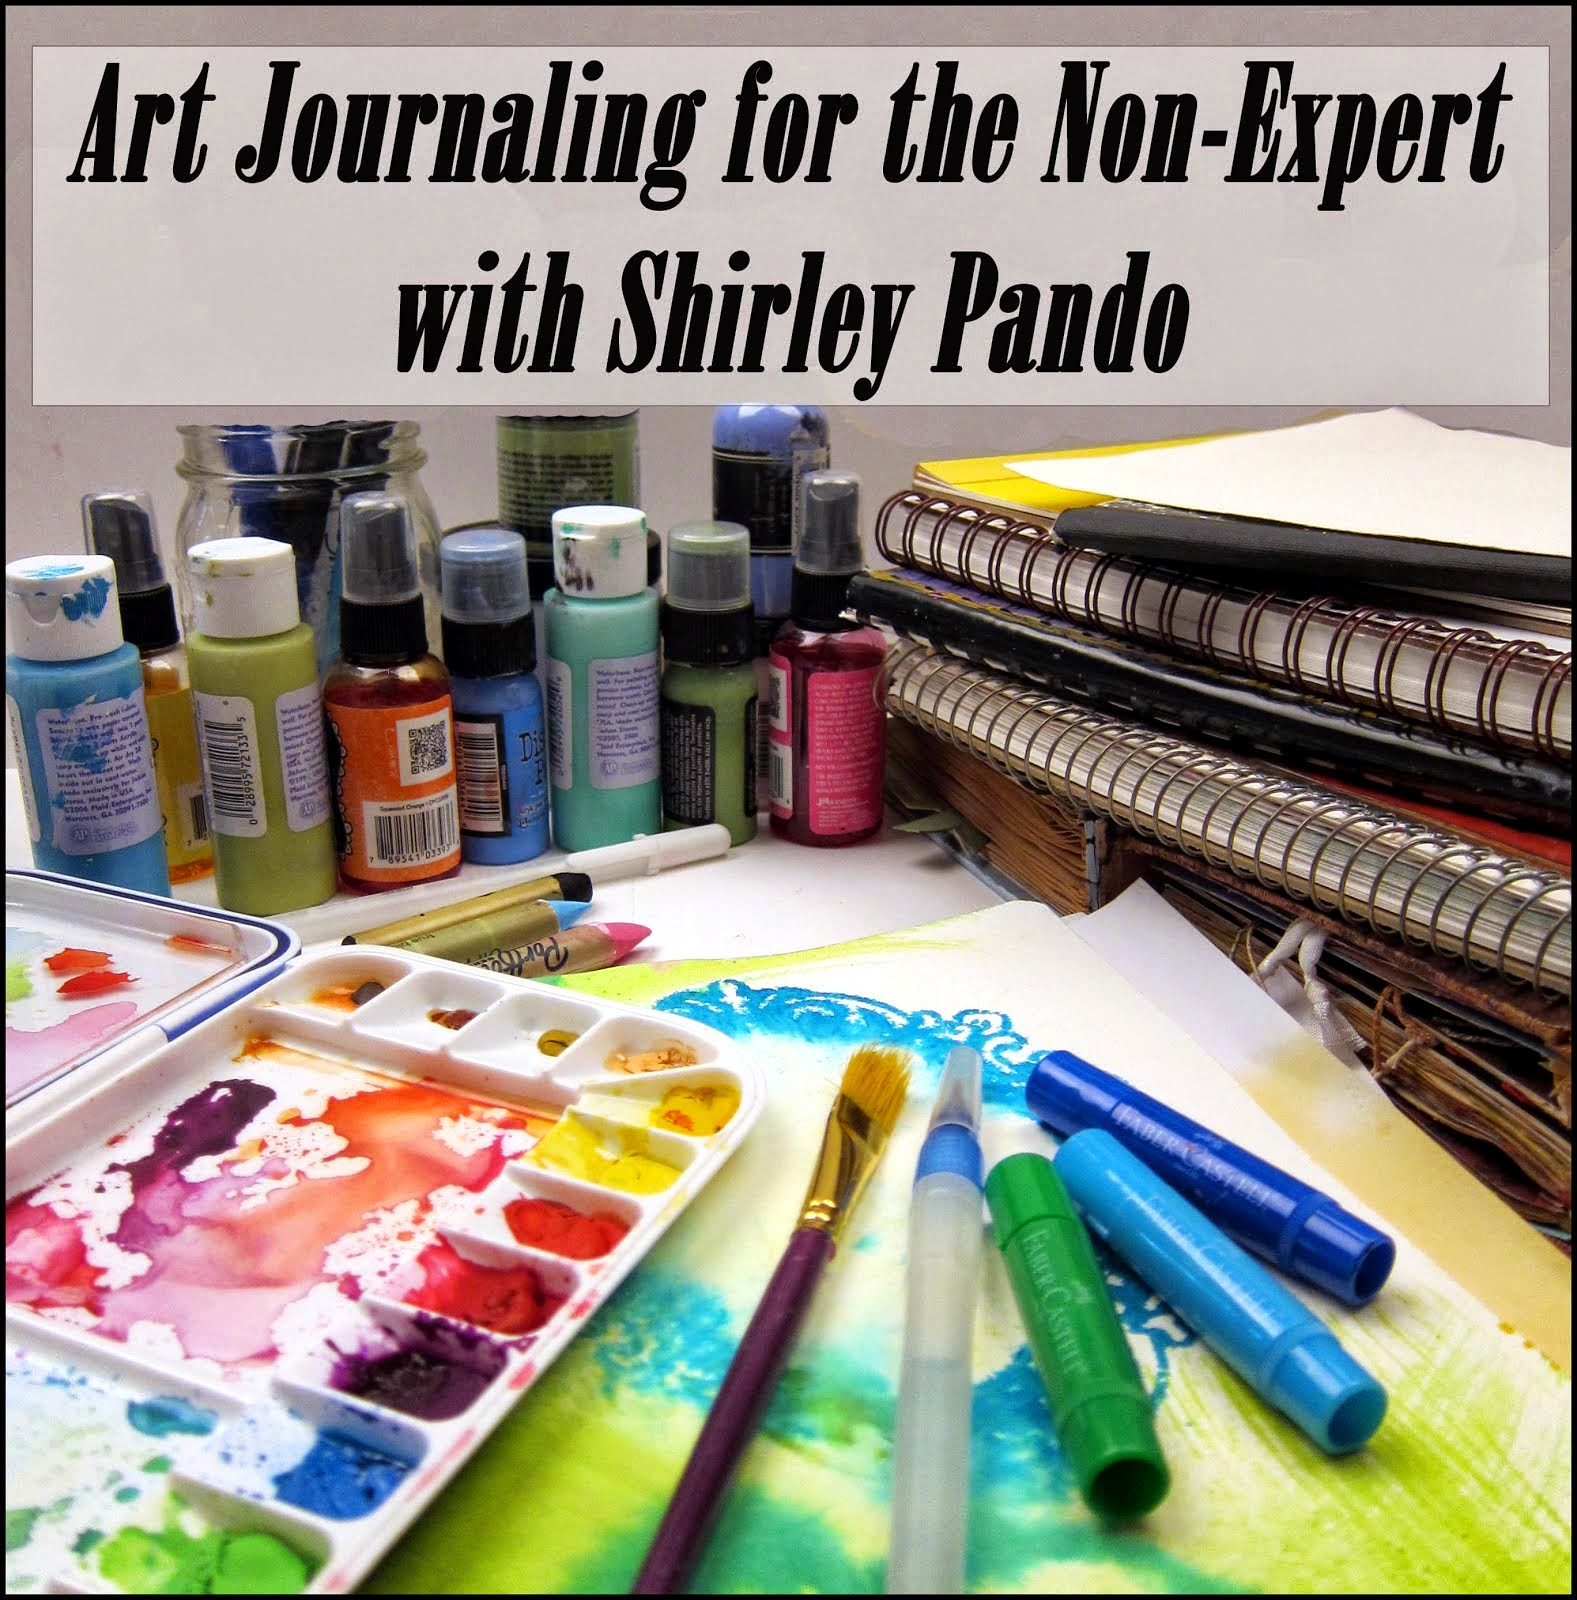 Art Journaling for the Non-Expert